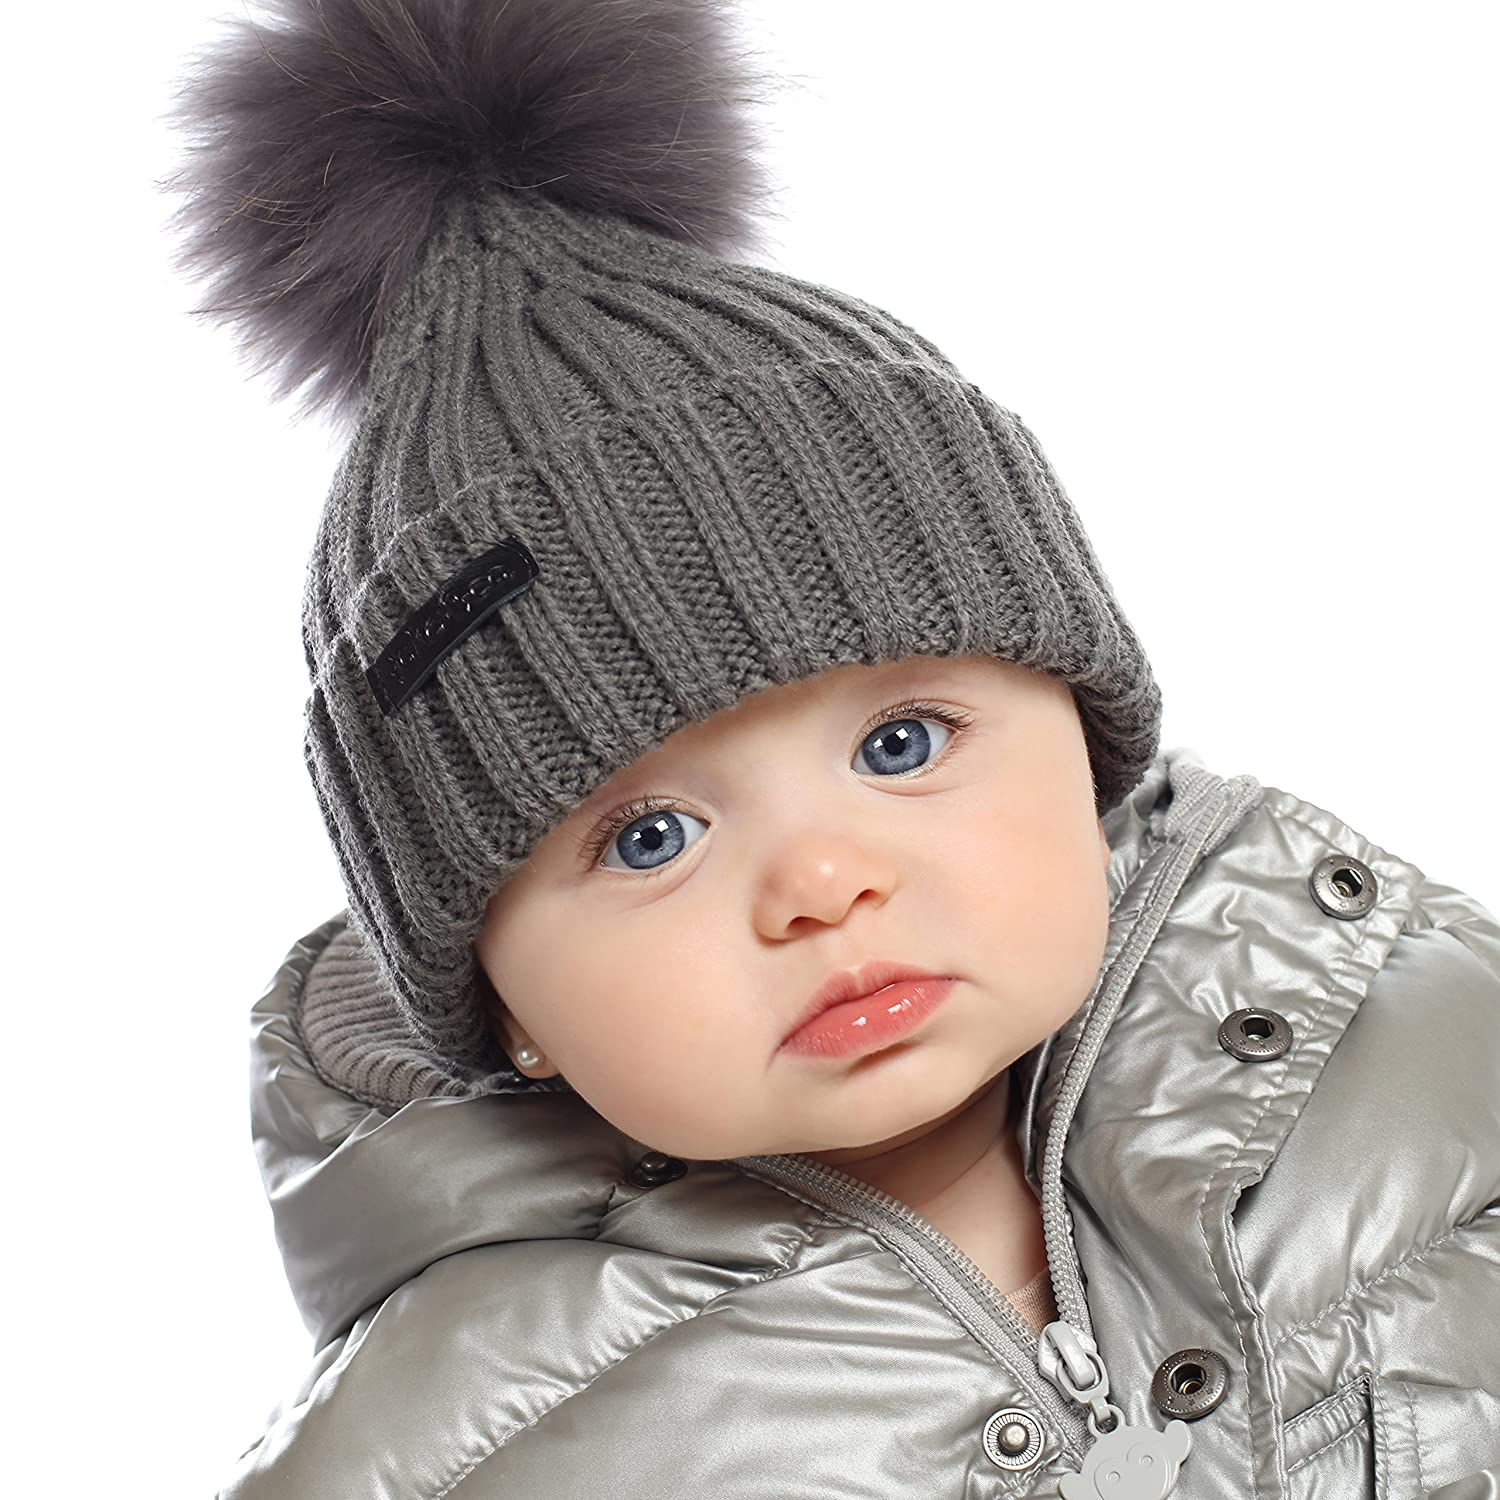 We hand-craft each hat in hope of providing not only cutely designed hats, but high quality hats that babies and children can comfortably wear. To find that special hat for your special little one, browse our wide selection of hand knit and crochet baby hats and toddler hats.